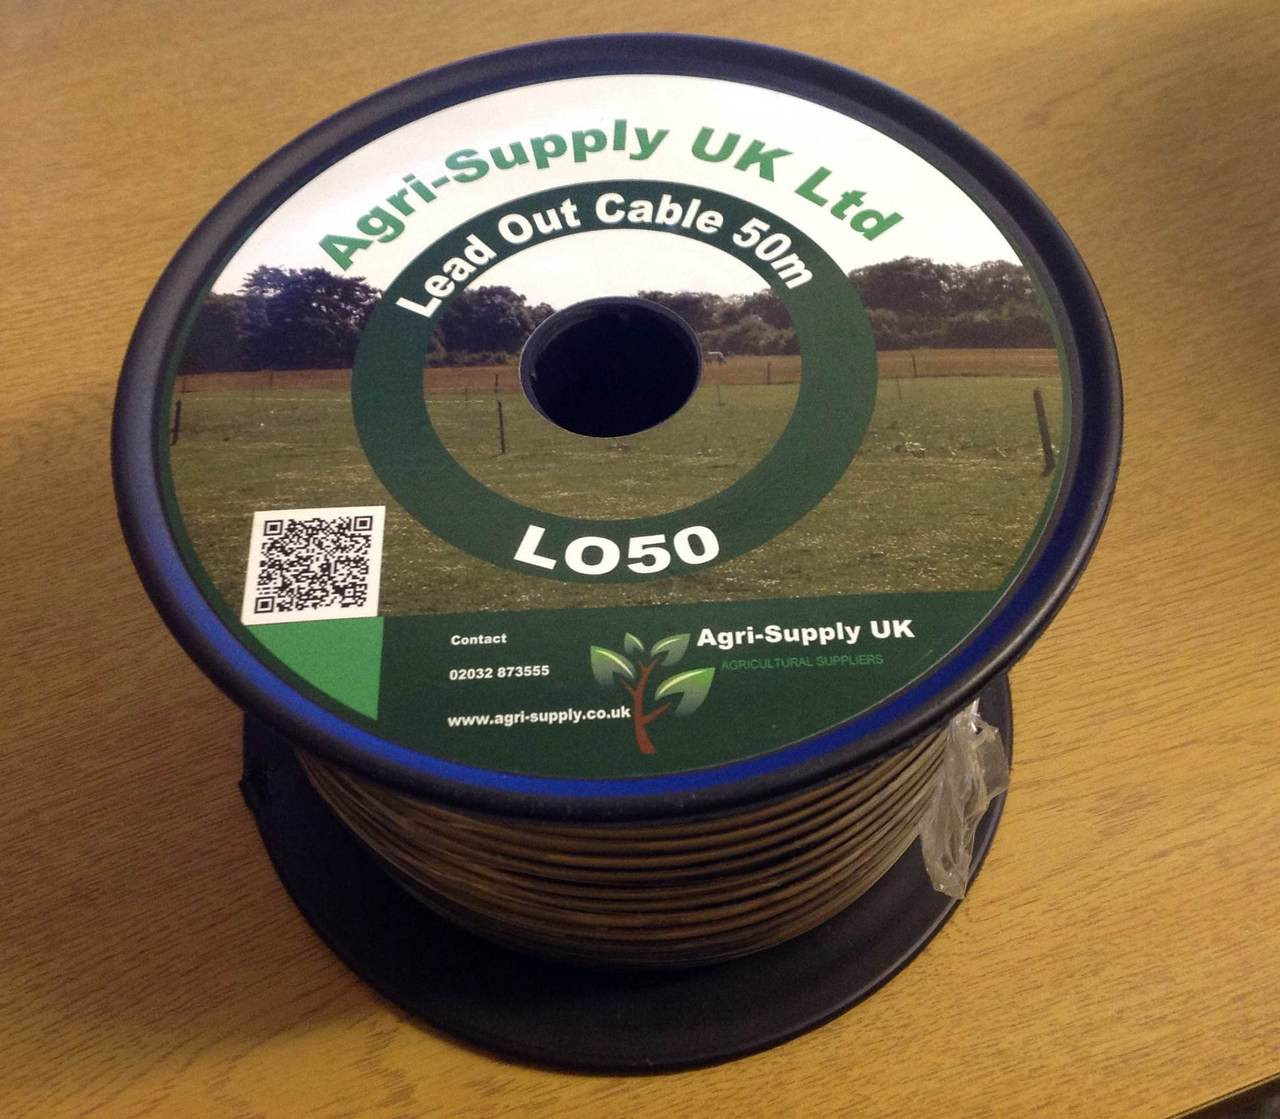 Agri-Supply 50m Lead Out Cable